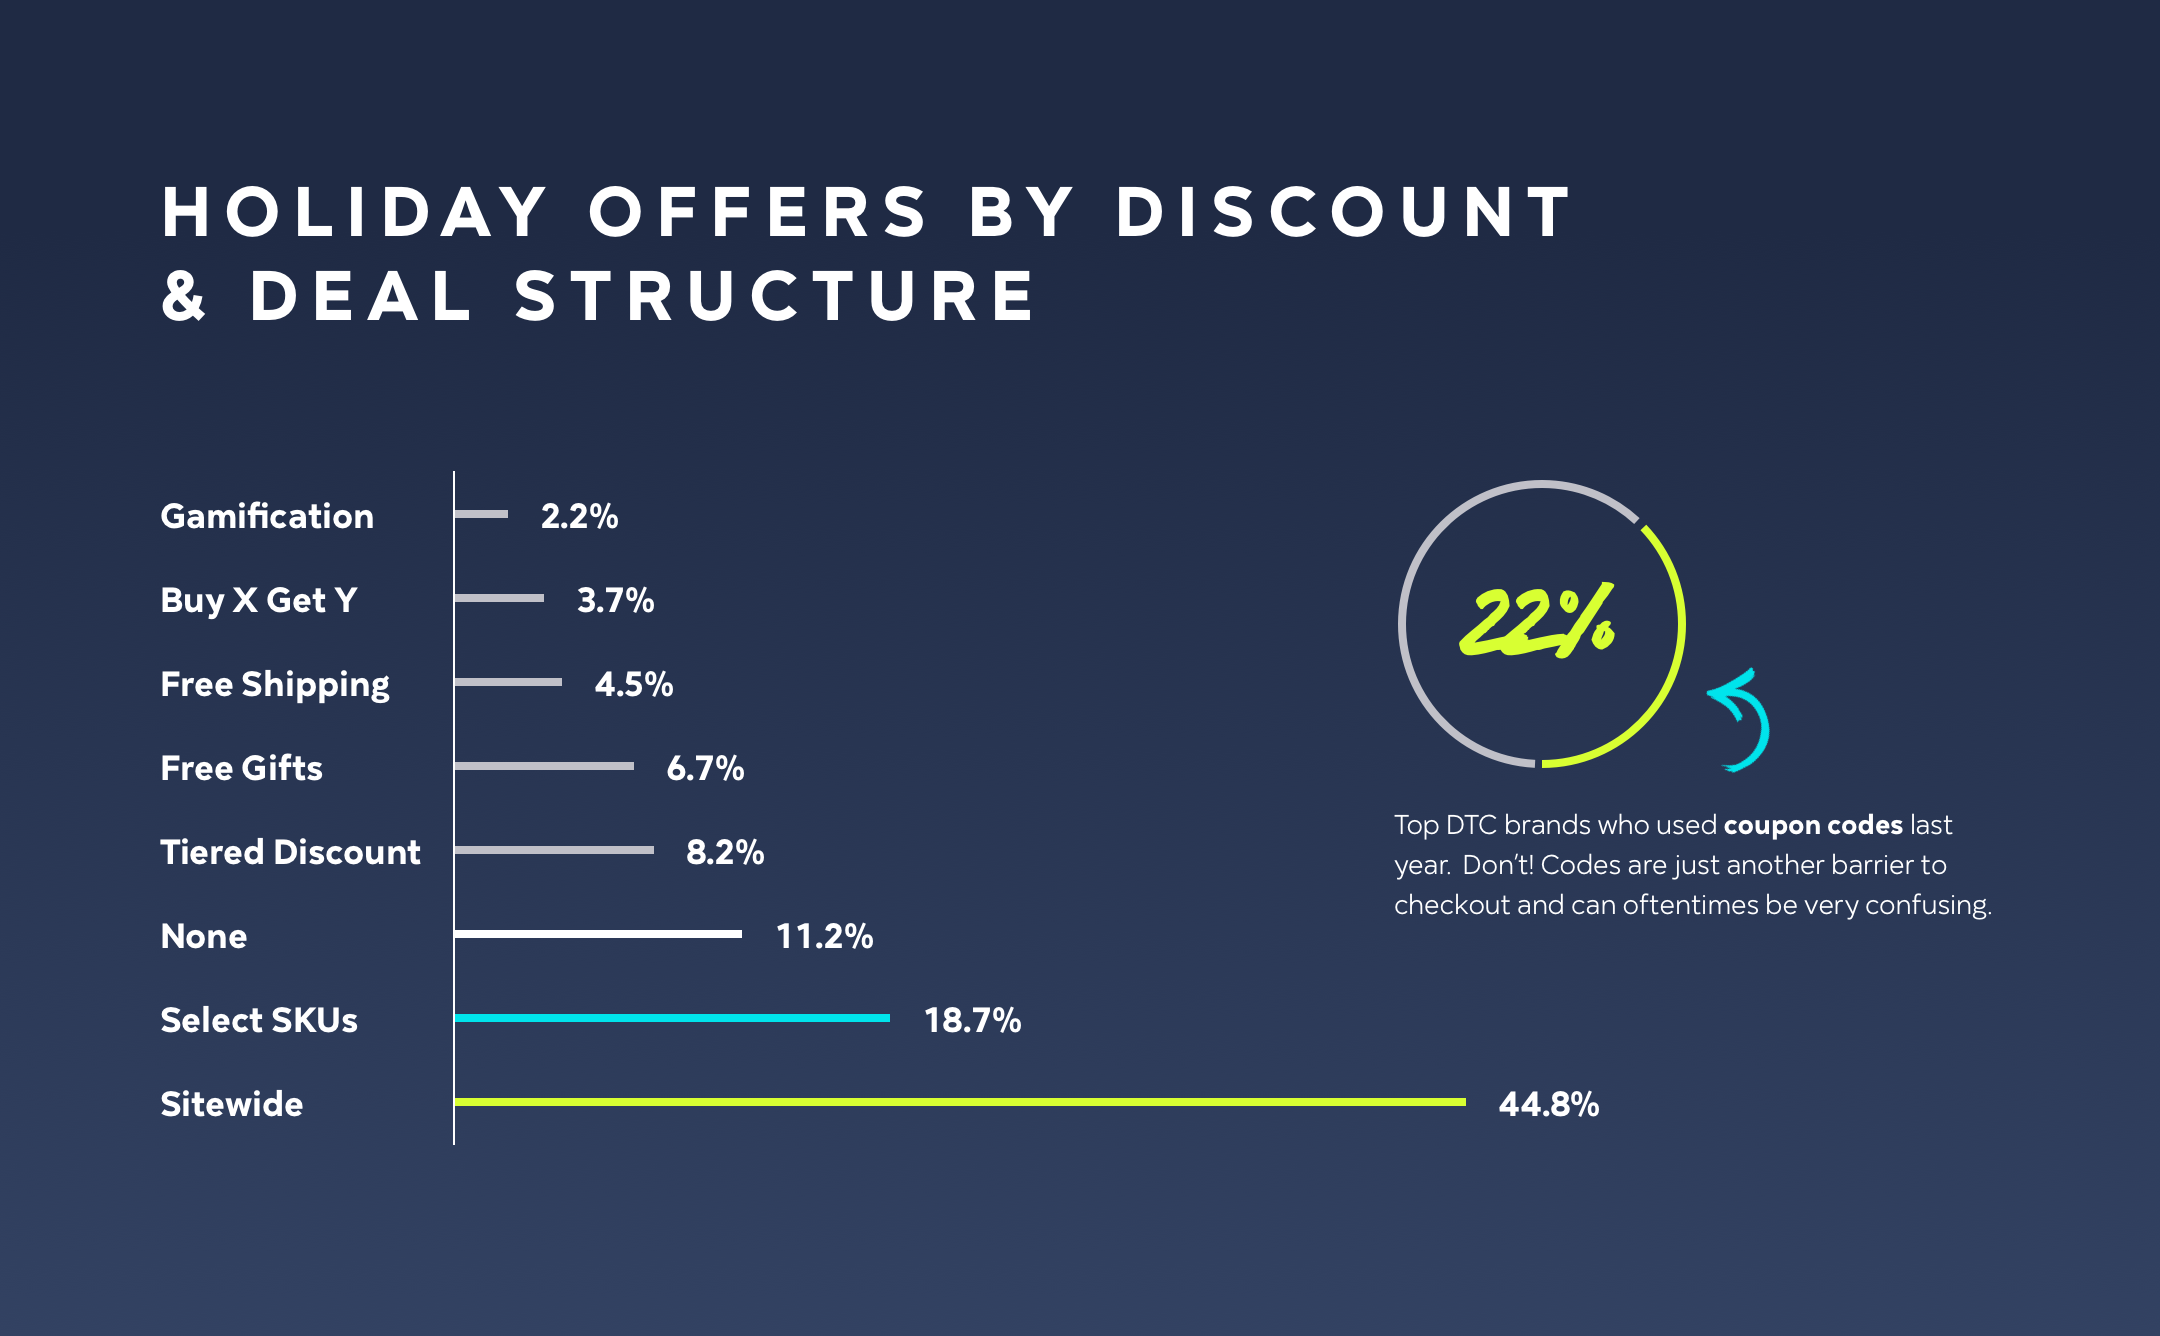 Holiday Offers by Deal Structure and Type